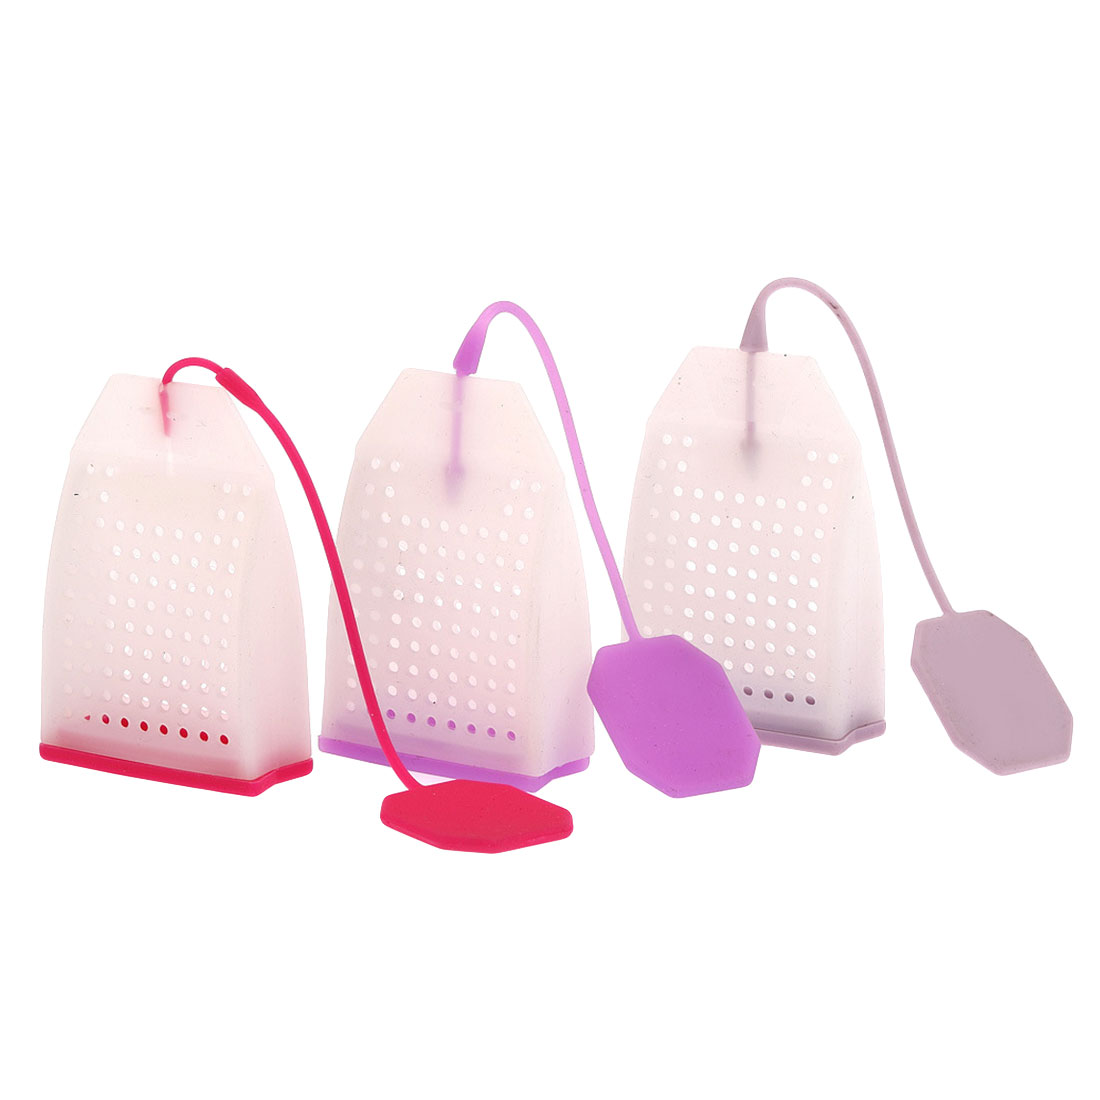 Tea Infuser Food-grade Silicone Tea Bags Colorful Style Strainers Herbal Tea Infusers Filters Scented Tools Random color